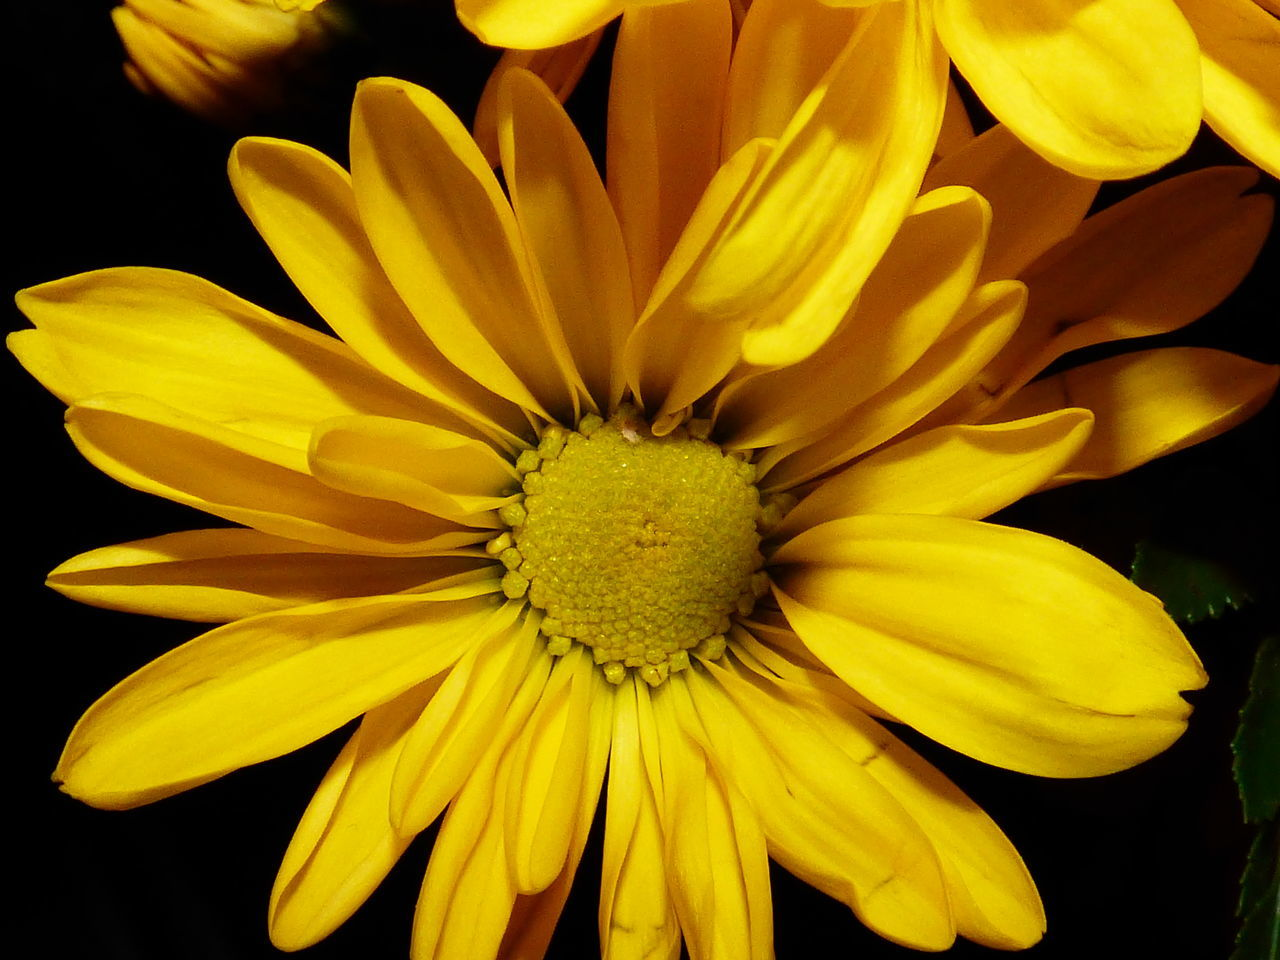 Daisy Love. A beautiful yellow Daisy against a black backdrop commanding all attemtion Beauty In Nature Black Background Cbkelley Photography Close-up Daisy Close Up Daisy Flower Daisy Love Day Flower Flower Head Fragility Freshness Nature No People Outdoors Petal Plant Pollen Yellow